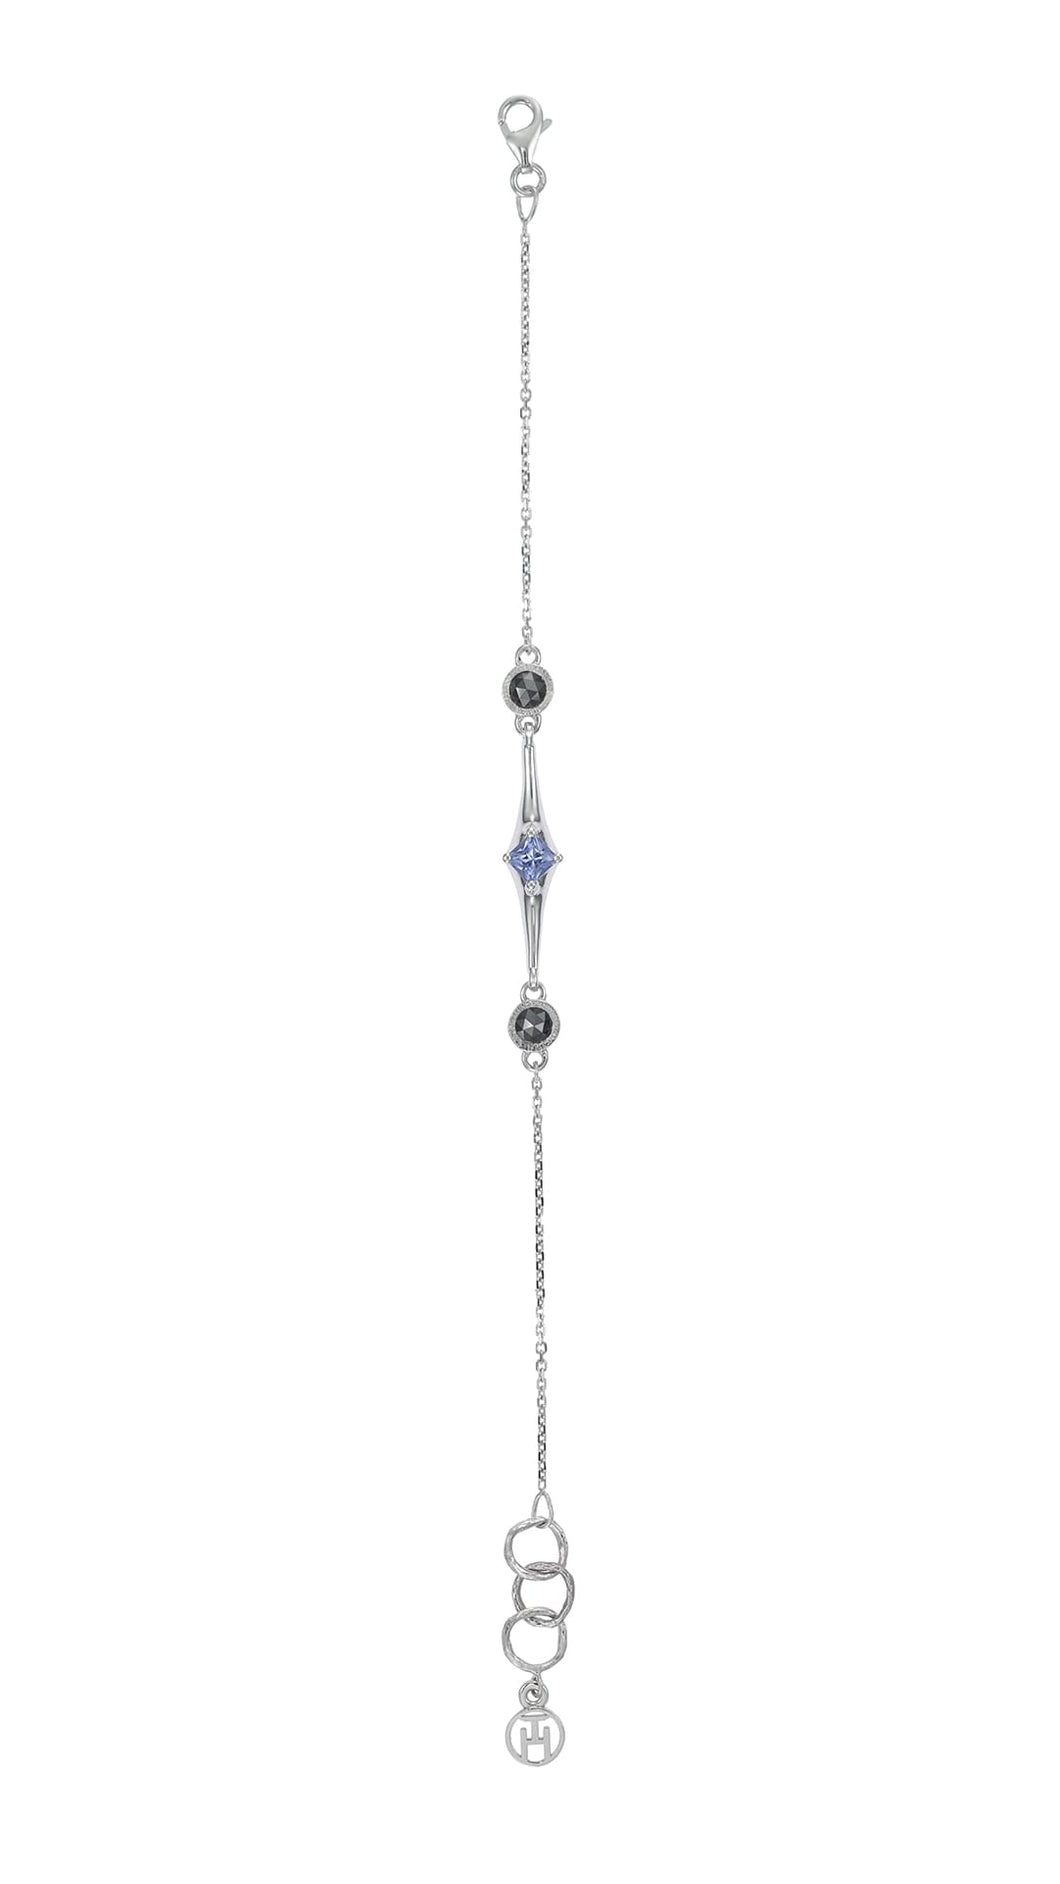 TREE OF LIFE 18-karat white gold, diamonds and tanzanite bracelet - heting-jewellery